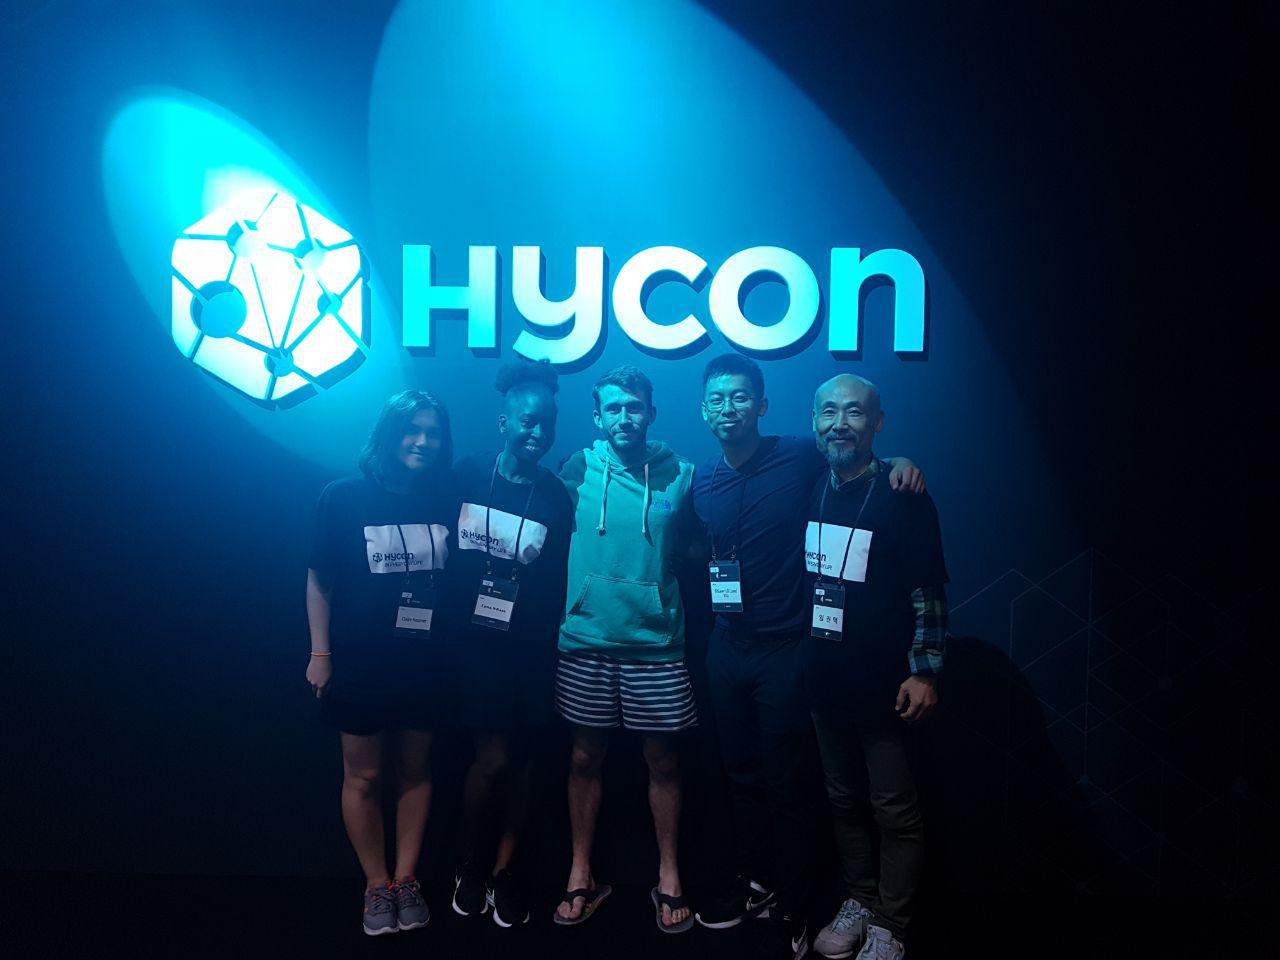 claire-team-hycon